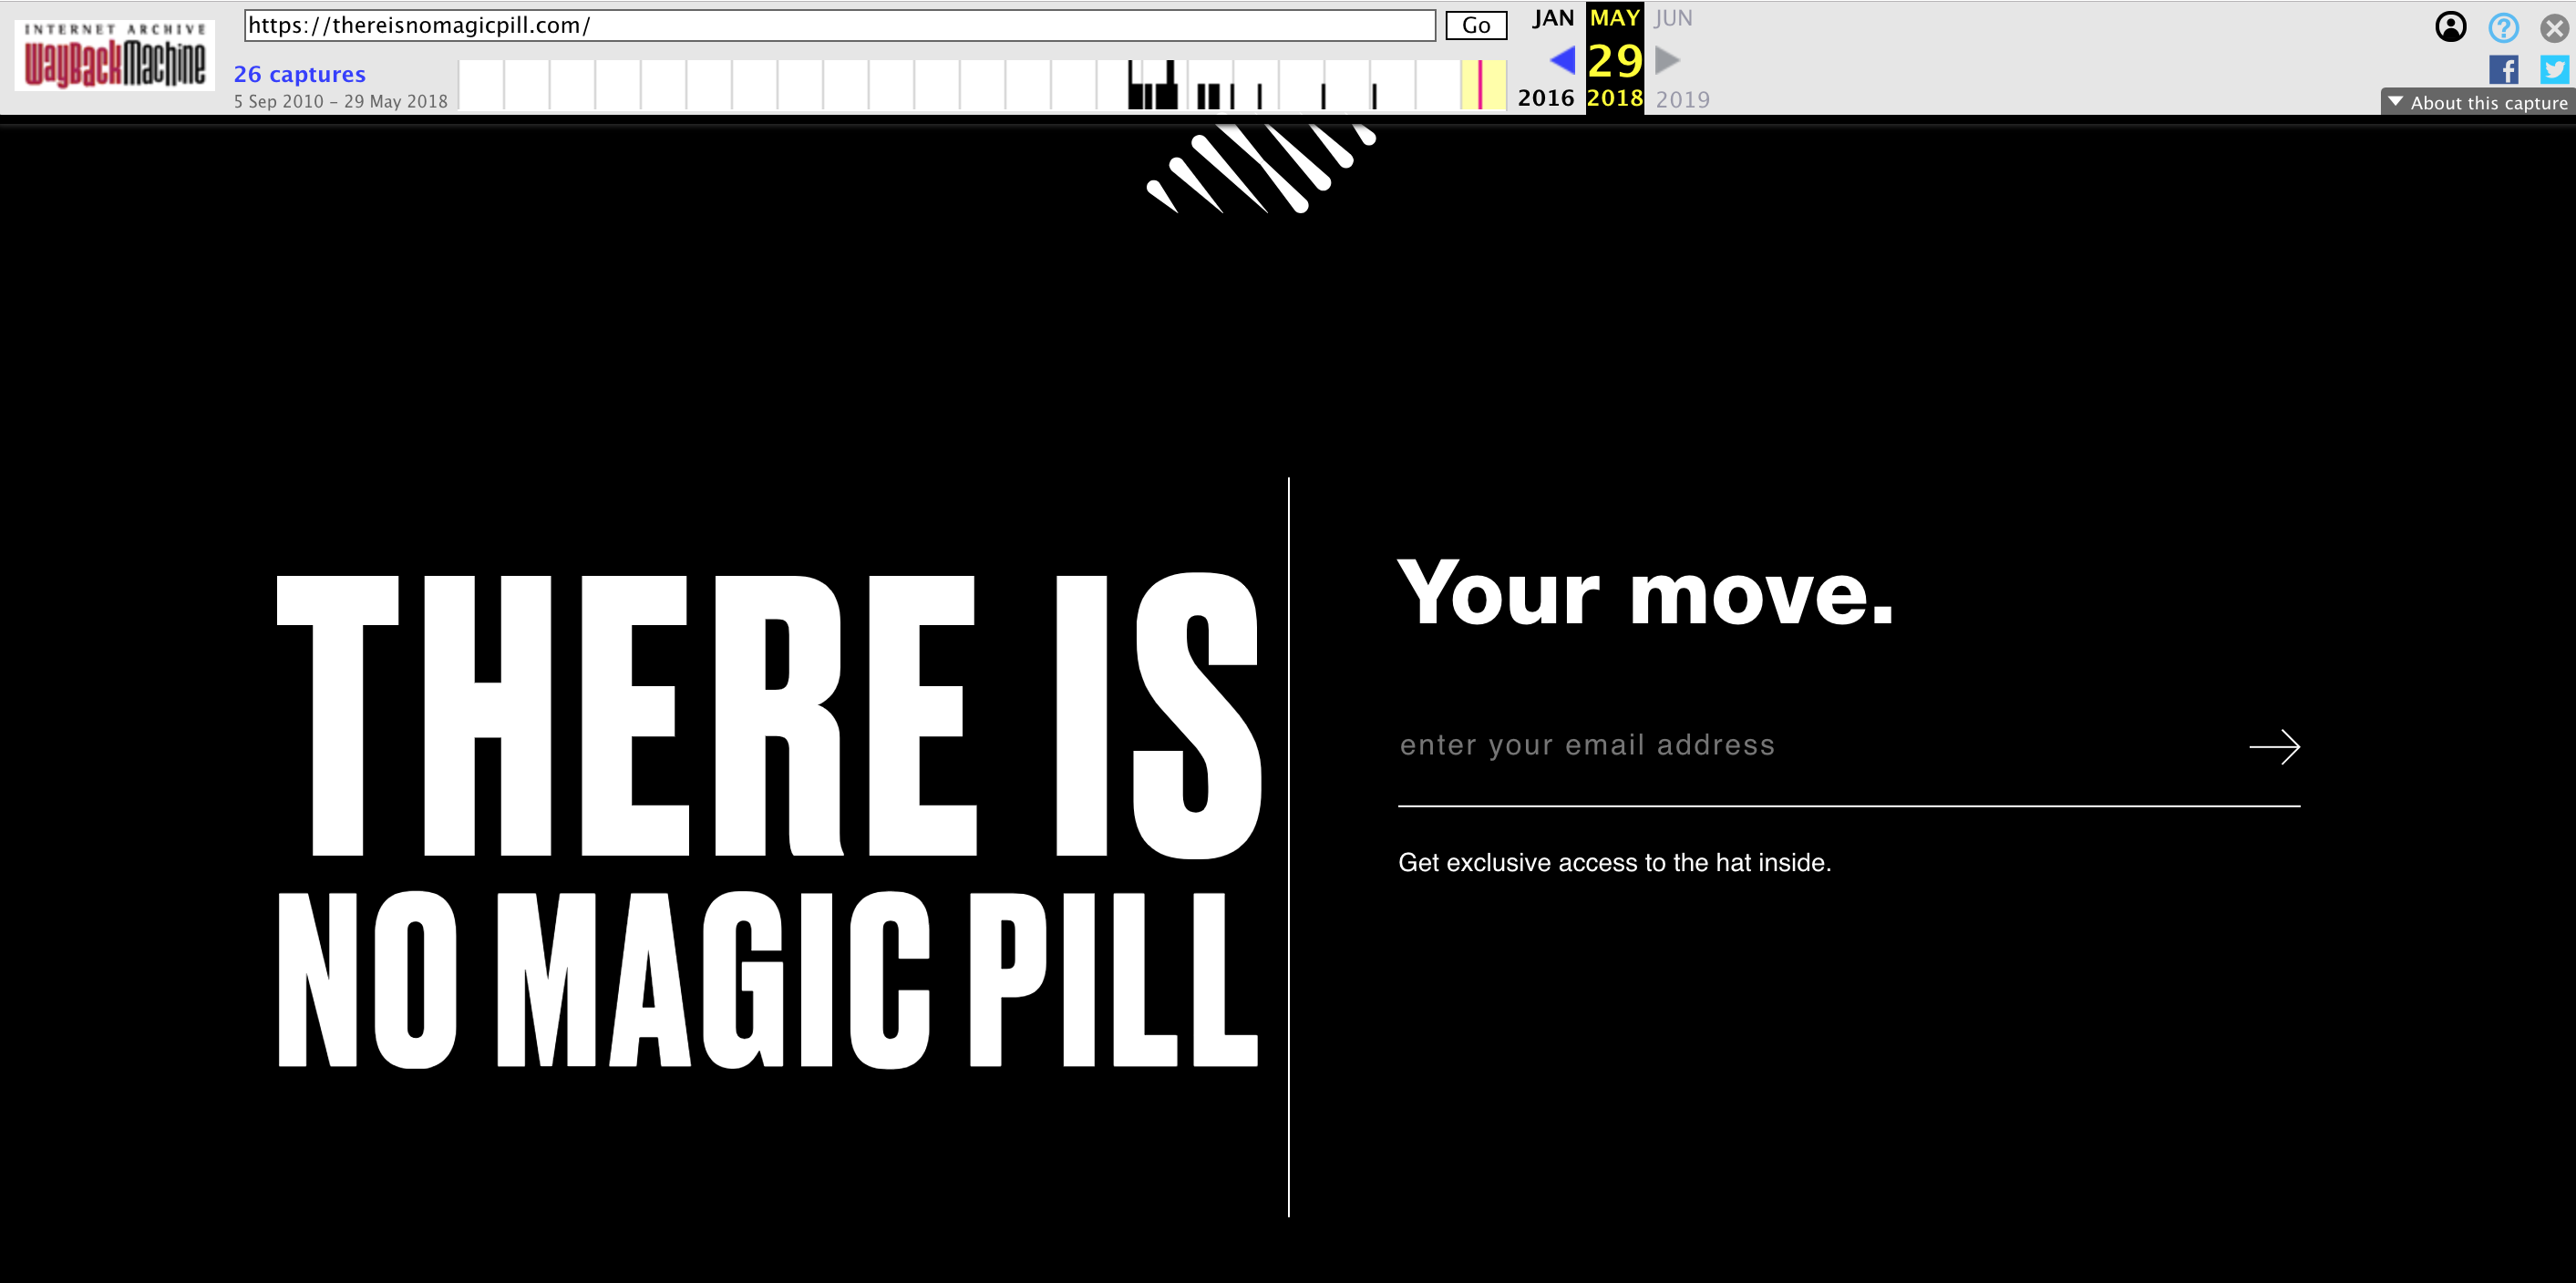 What does Lebron James 'There is no magic pill' project mean?